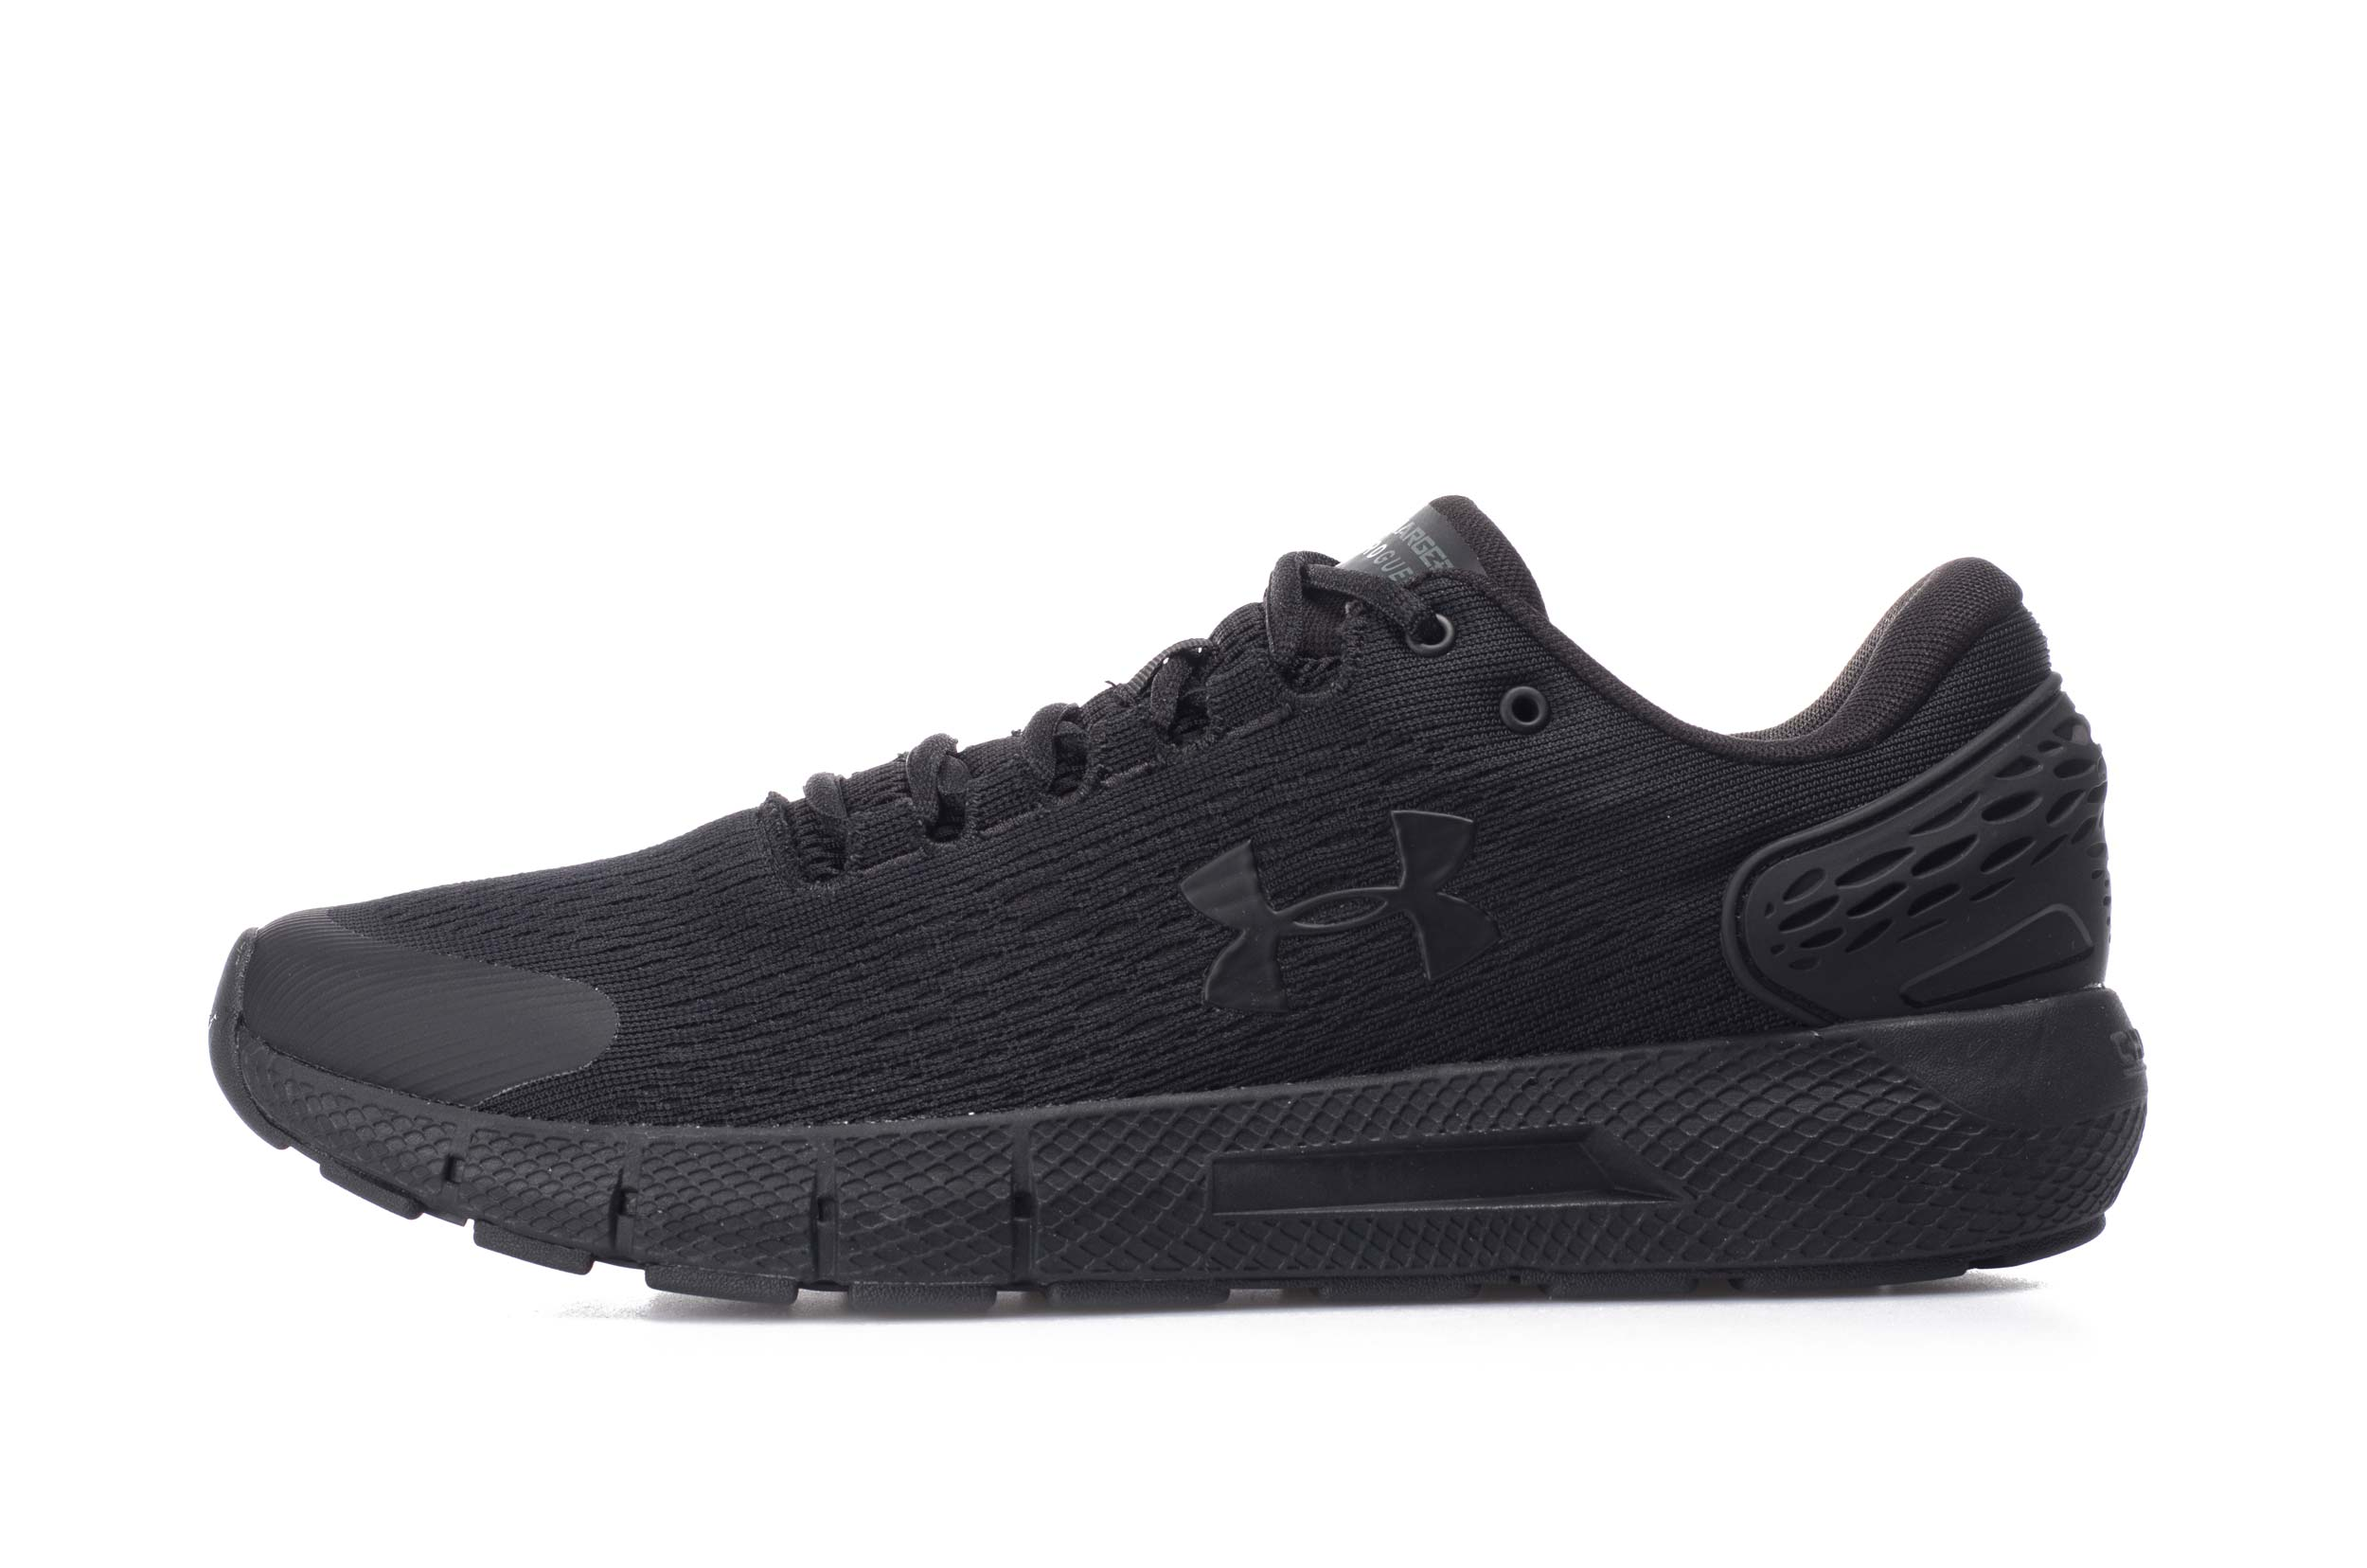 UNDER ARMOUR CHARGED ROGUE 2 3022592-003 Μαύρο